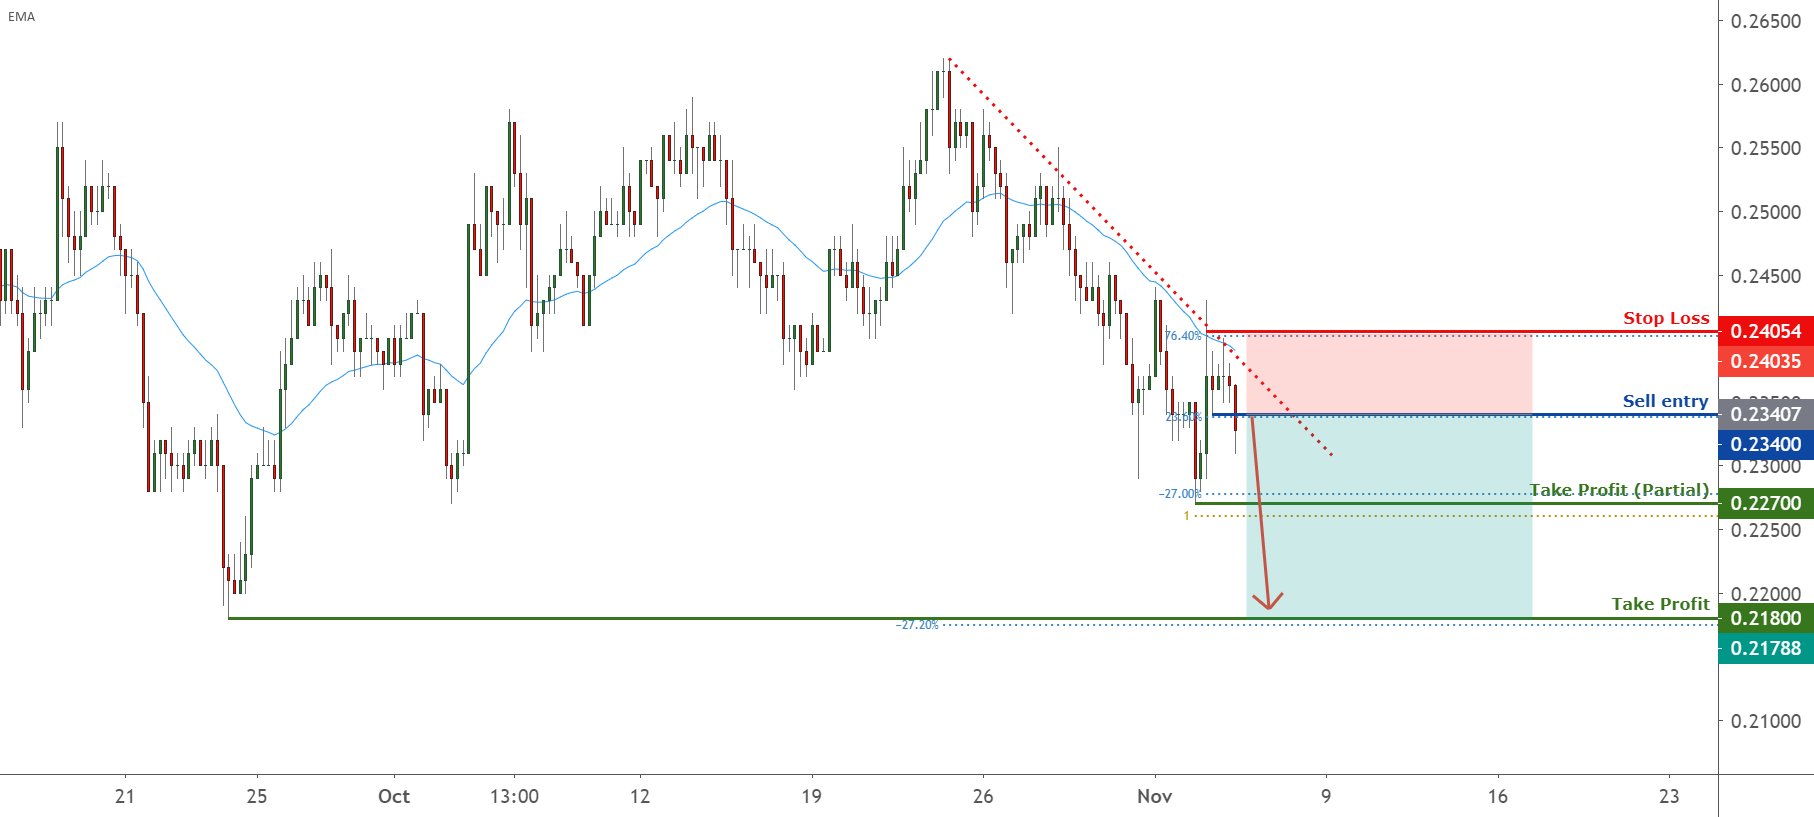 XRP approaching resistance, potential drop! | 4 Nov 2020 for FX:XRPUSD by FXCM